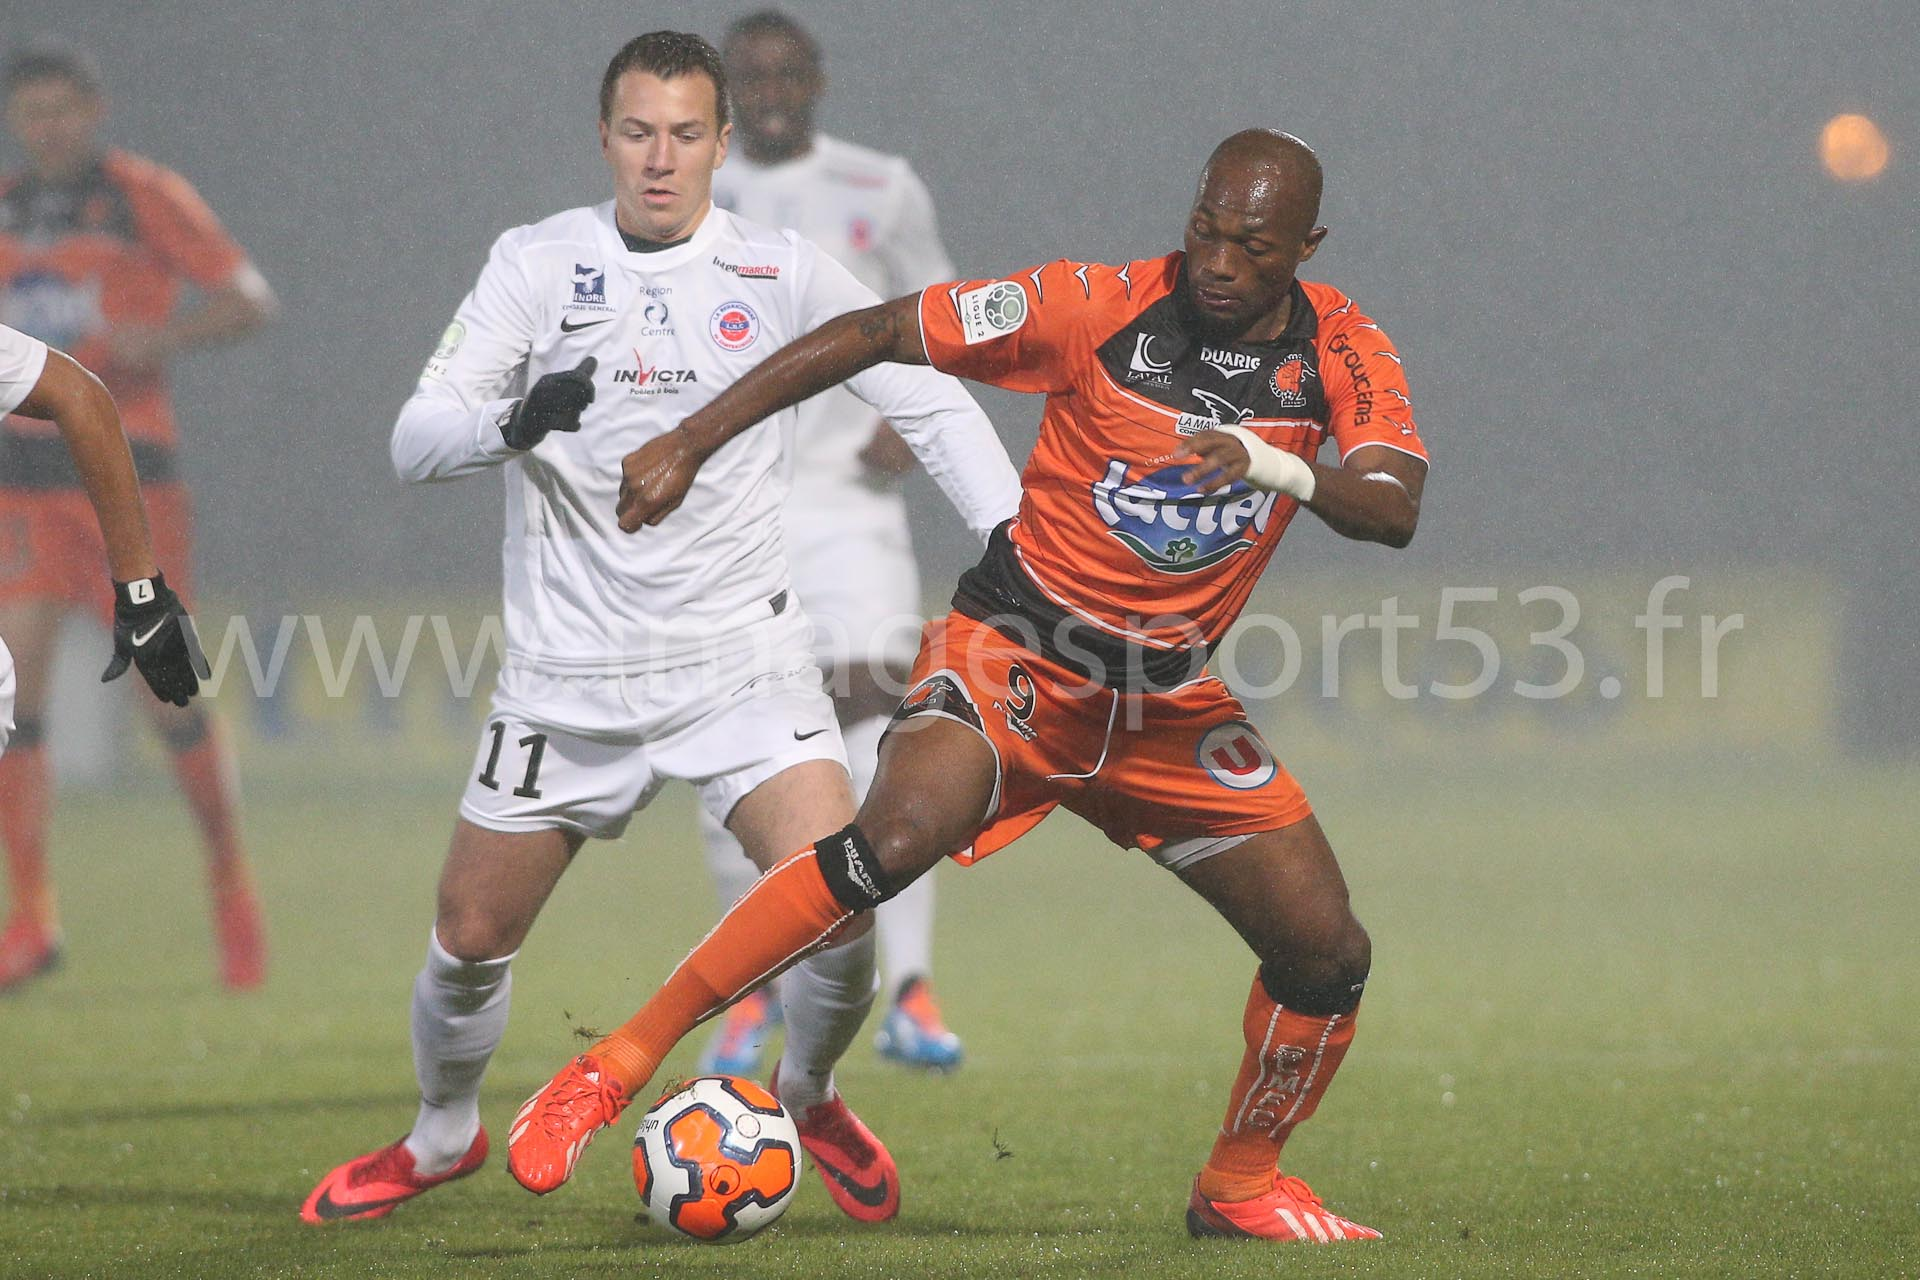 NG_1314_Ligue2_J17_-Laval-Chateauroux_12